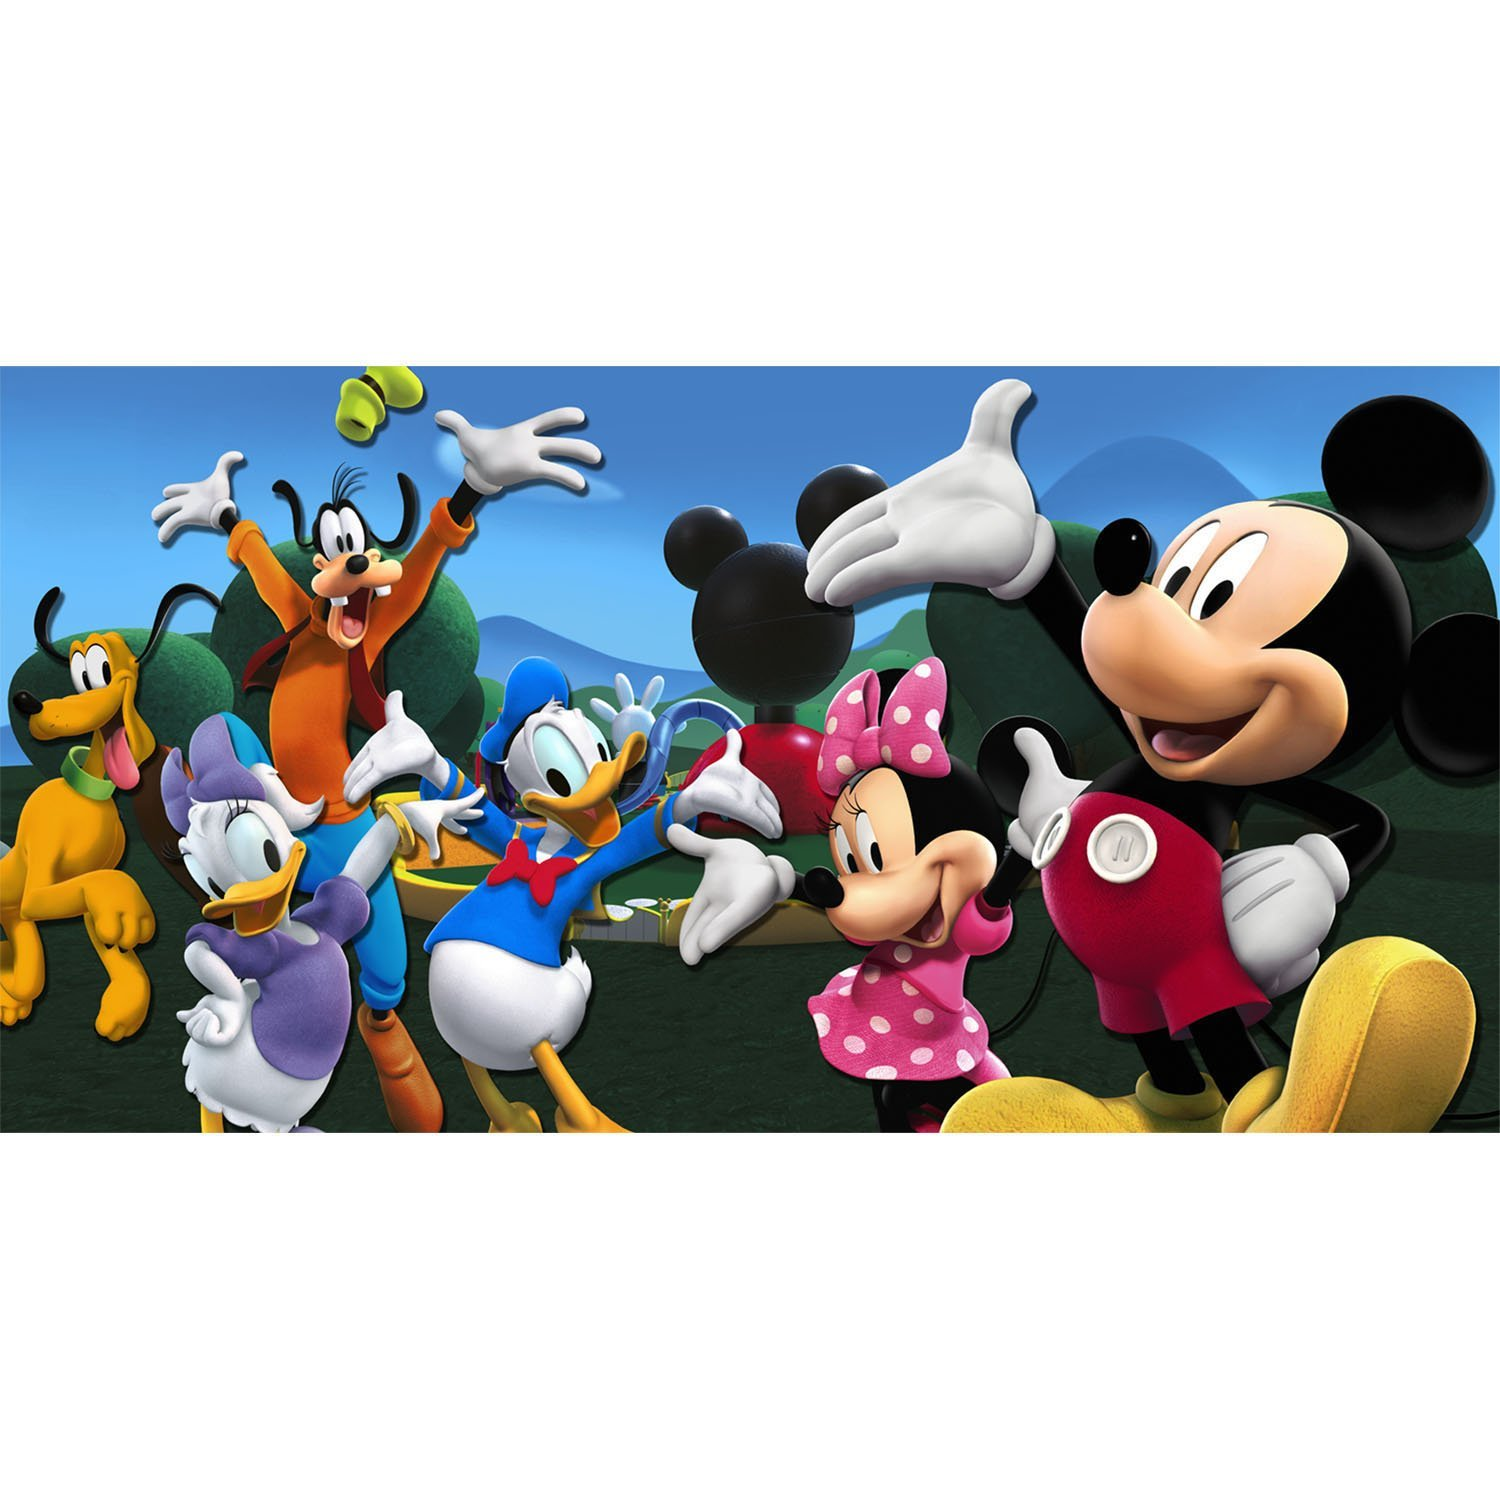 [50+] Mickey Mouse Clubhouse Images Wallpapers on ...